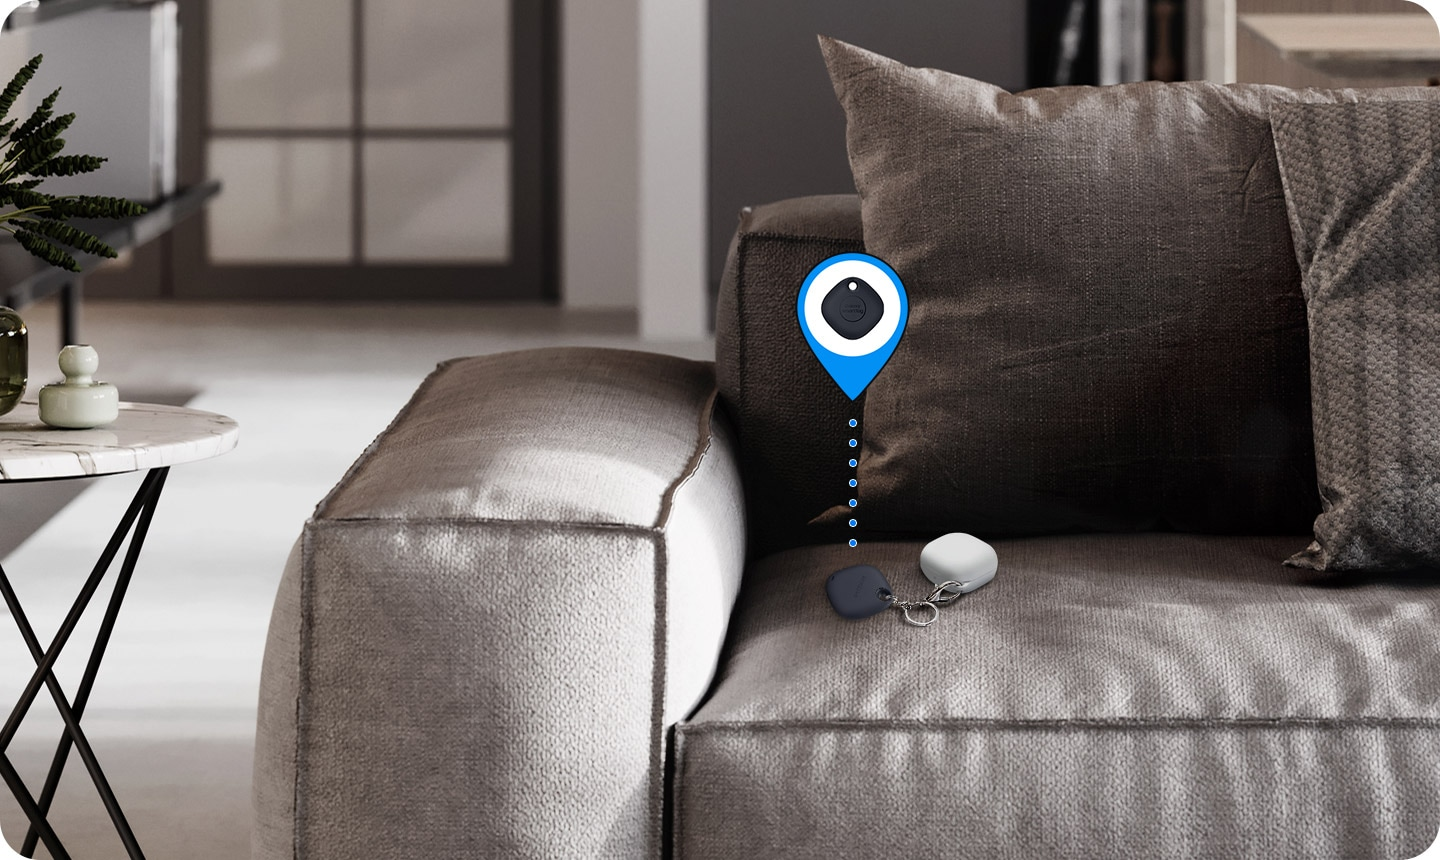 On a sofa, Galaxy Buds in the corner is seen with SmartTag attached. Virtual icon indicates that tag helps users find items